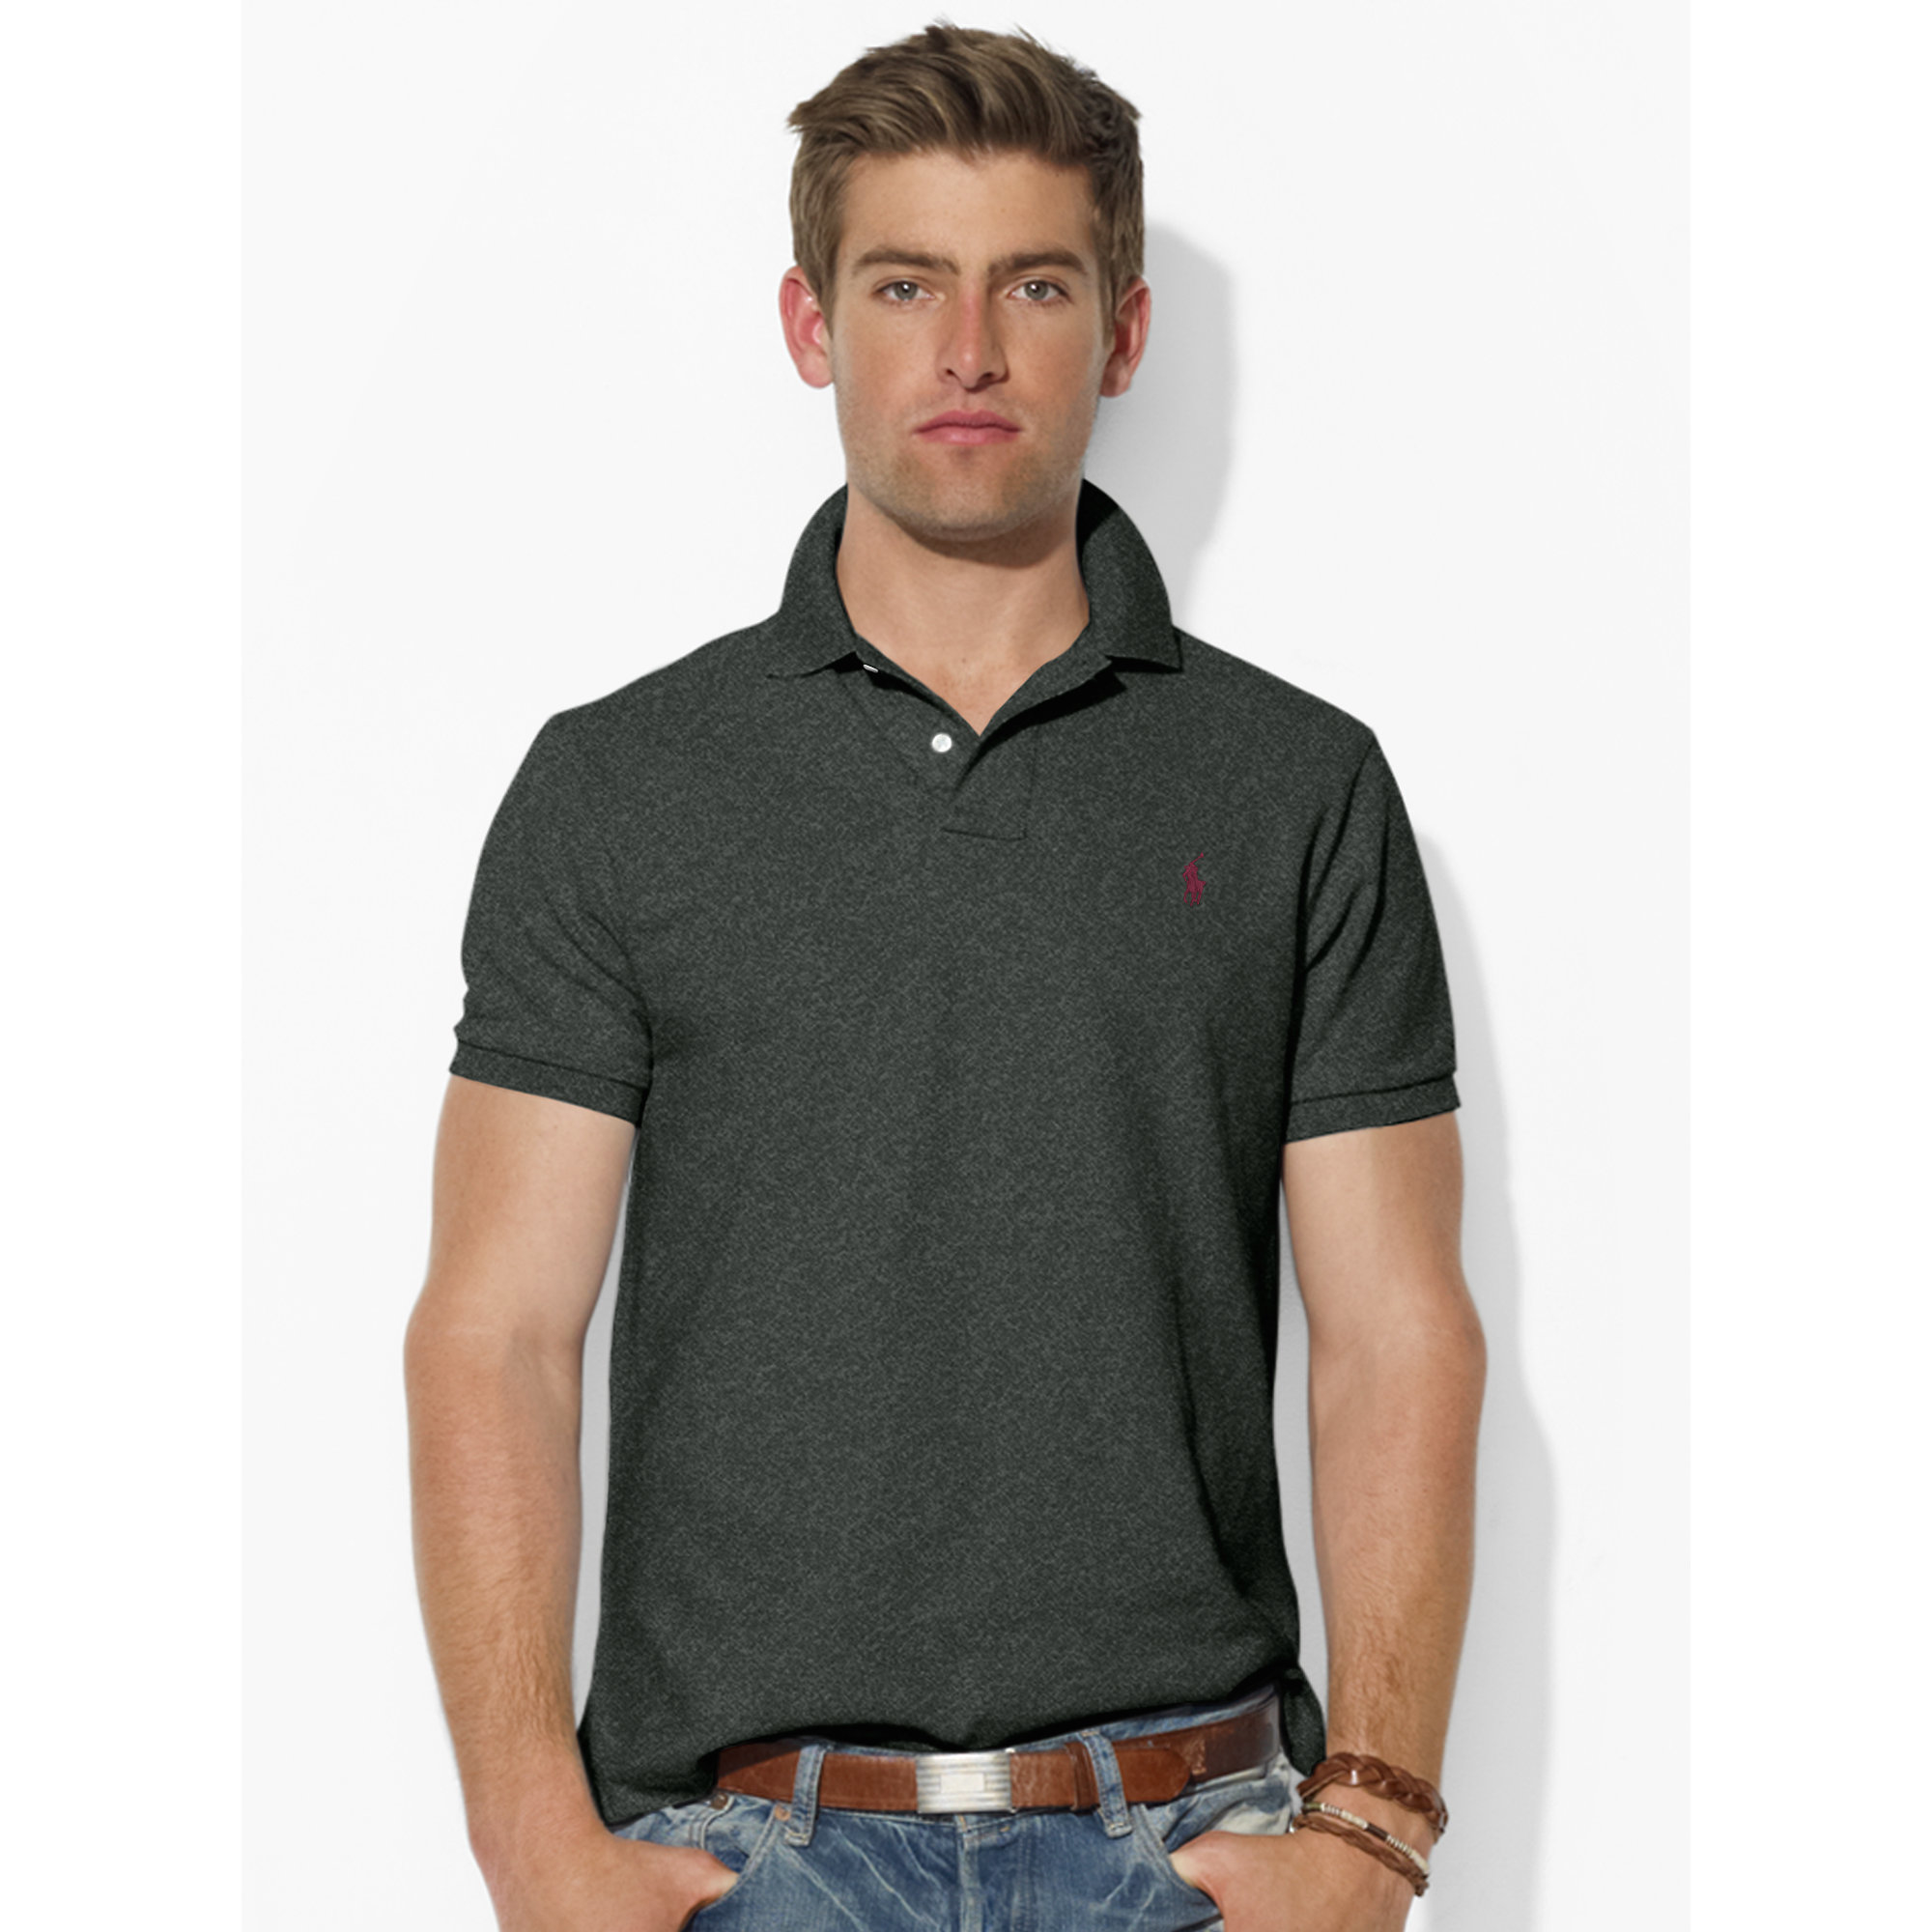 Polo ralph lauren custom fit mesh polo shirt in black for for Black fitted polo shirt